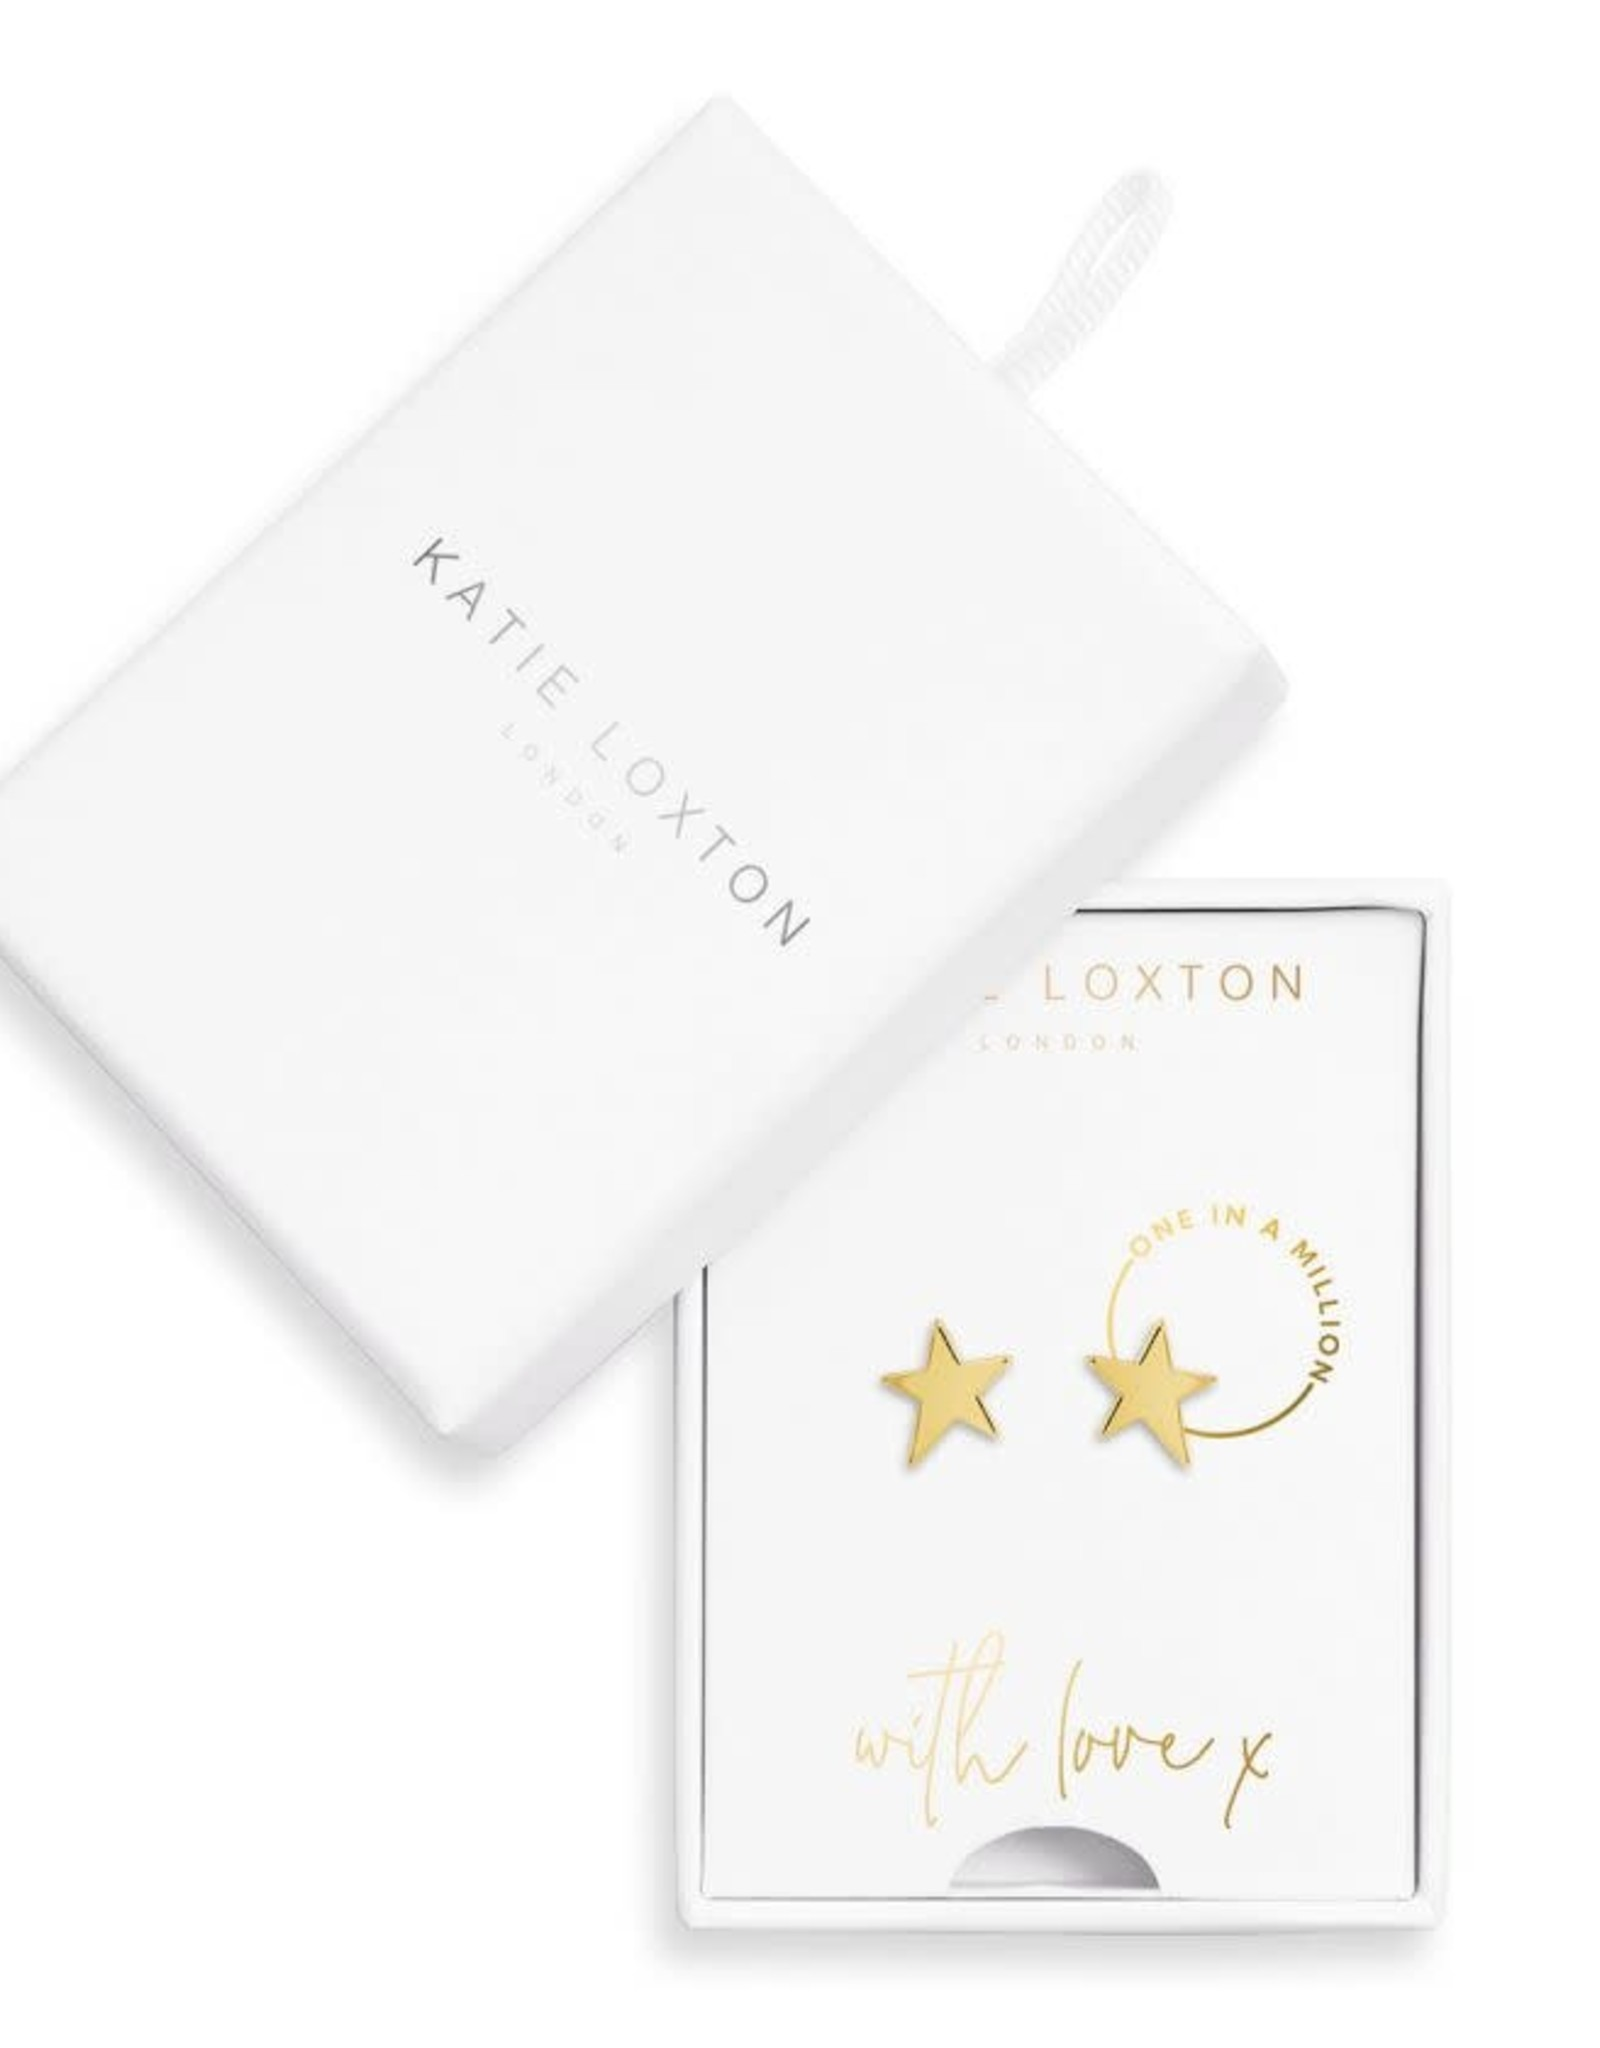 Katie Loxton Earring Box Gold One in a Million